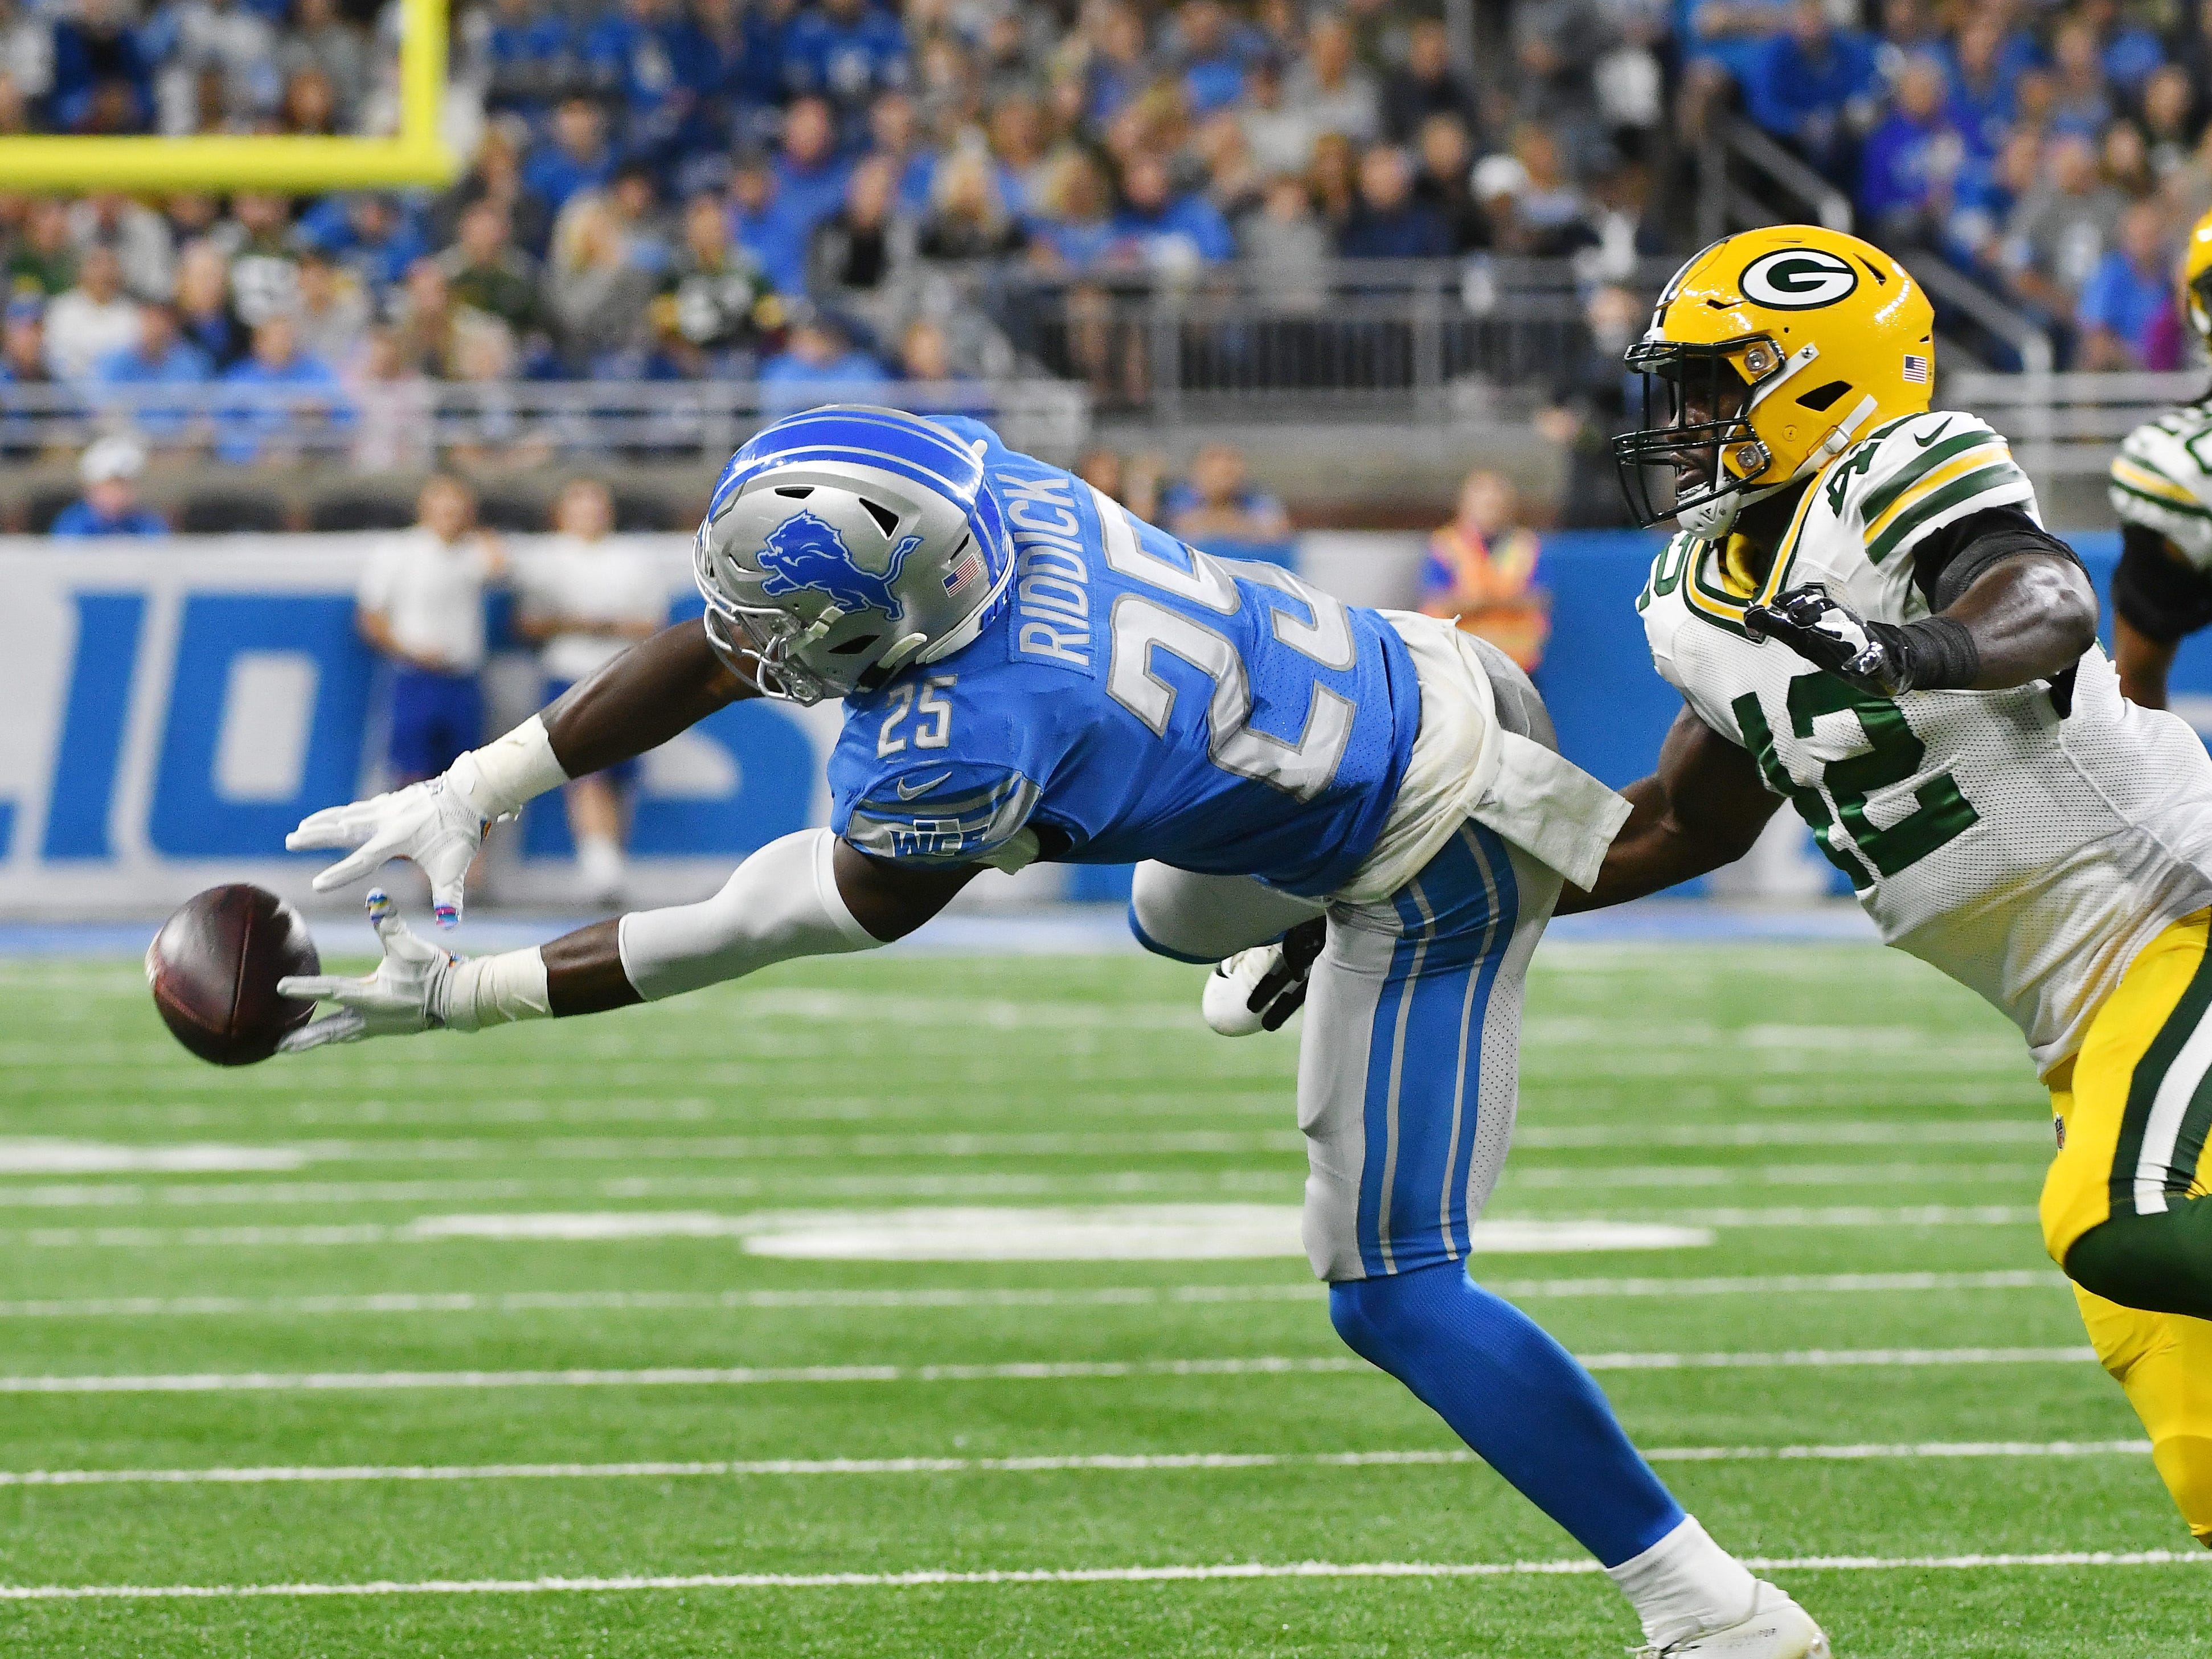 Lions running back Theo Ridick can't pull in a reception with Packers' Oren Burks defending in the first quarter.